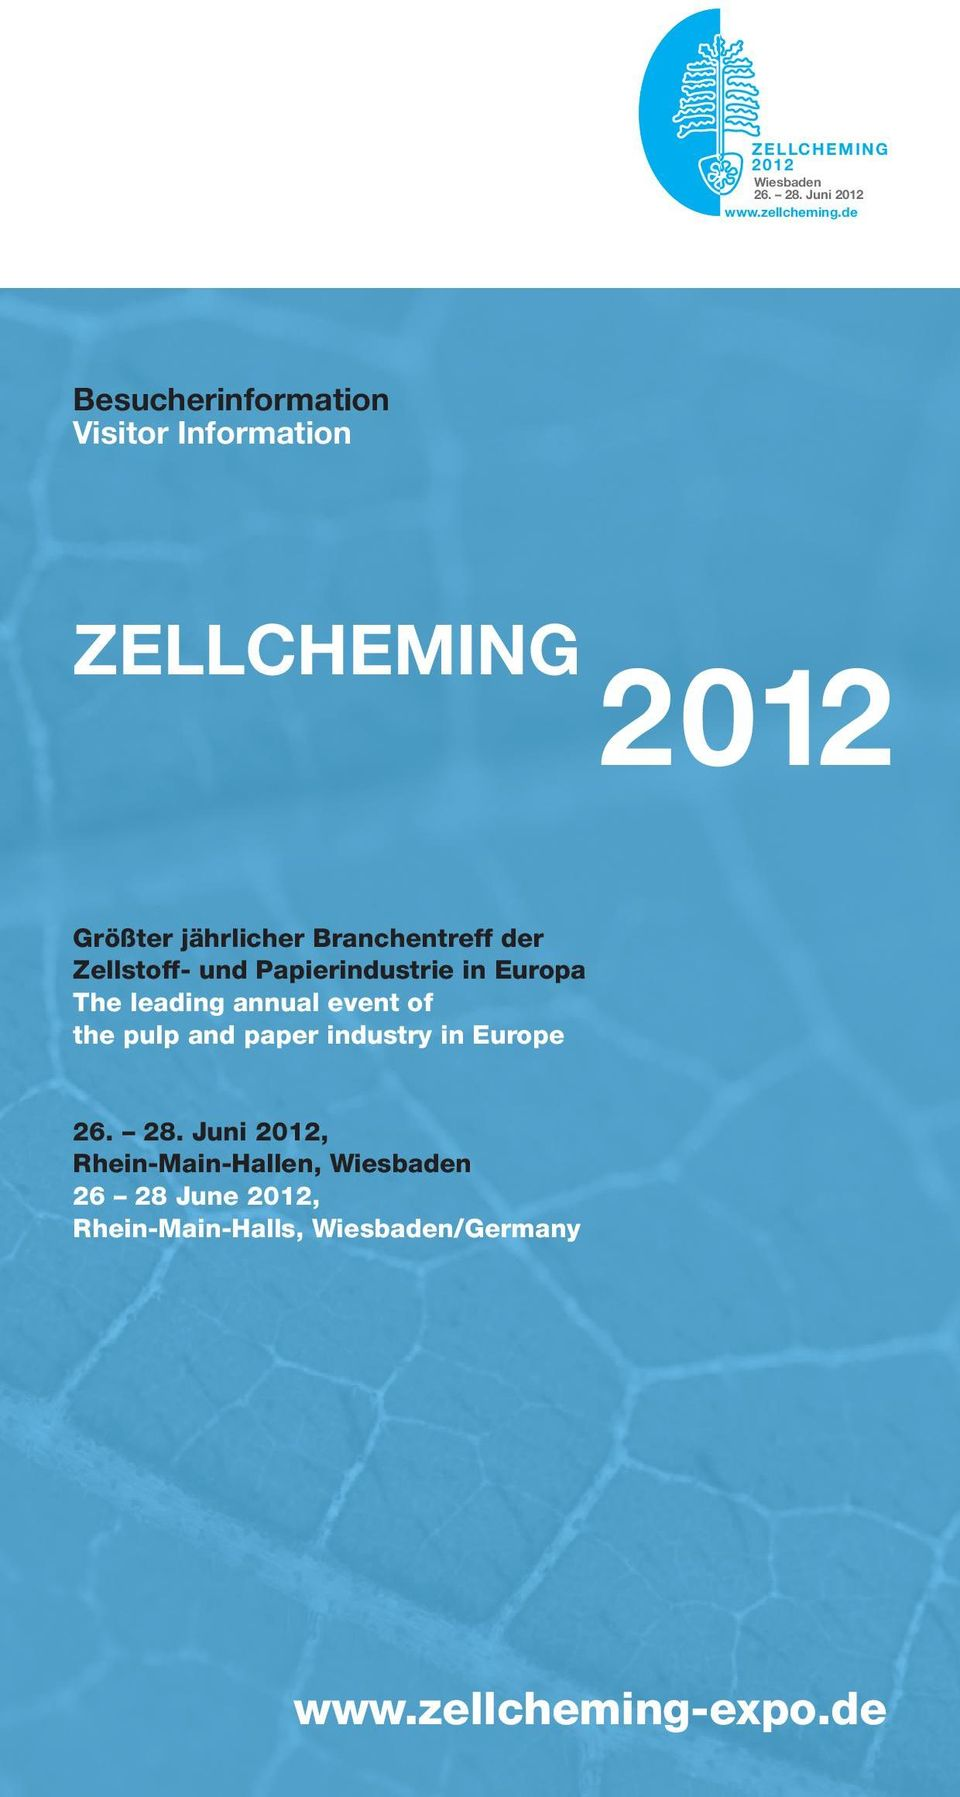 Zellstoff- und Papierindustrie in Europa The leading annual event of the pulp and paper industry